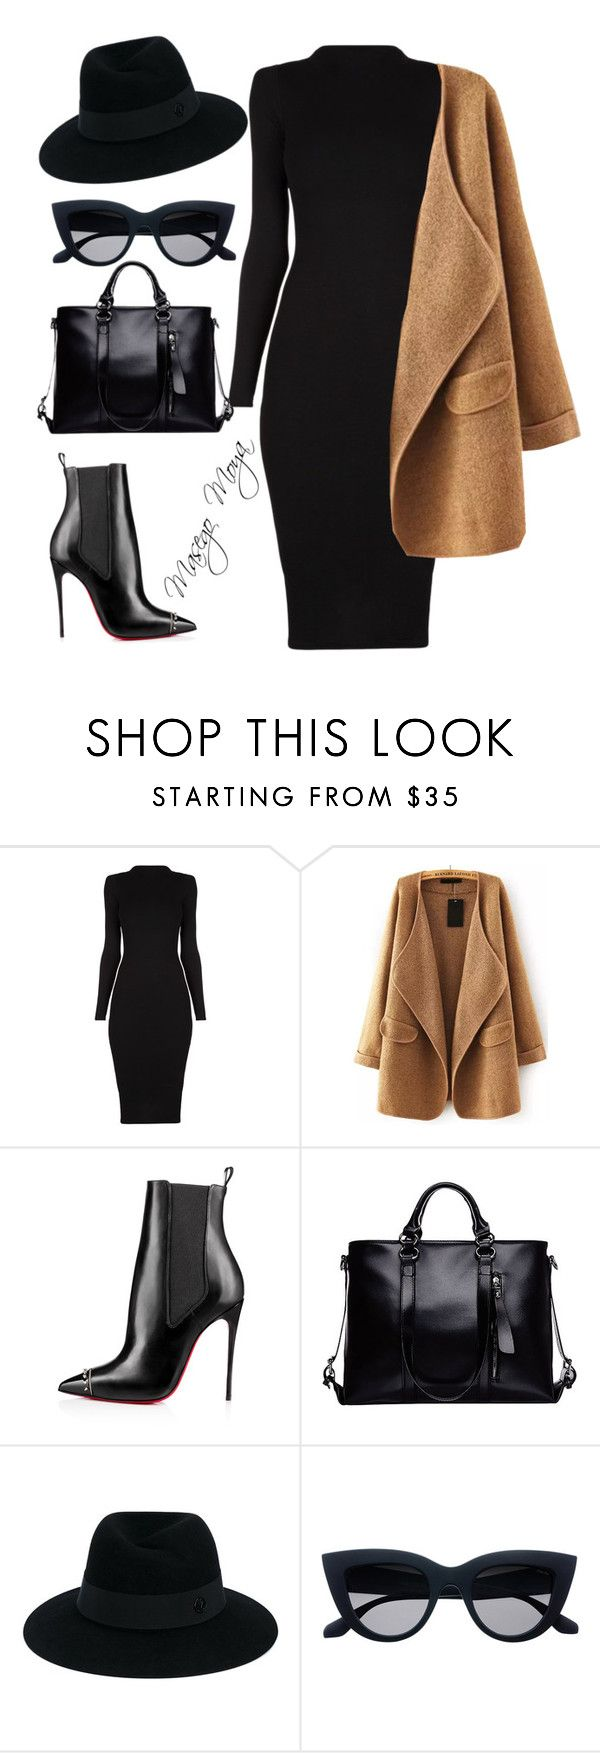 """Funeral Outfit"" by masego-moya ❤ liked on Polyvore featuring Christian Louboutin and Maison Michel"